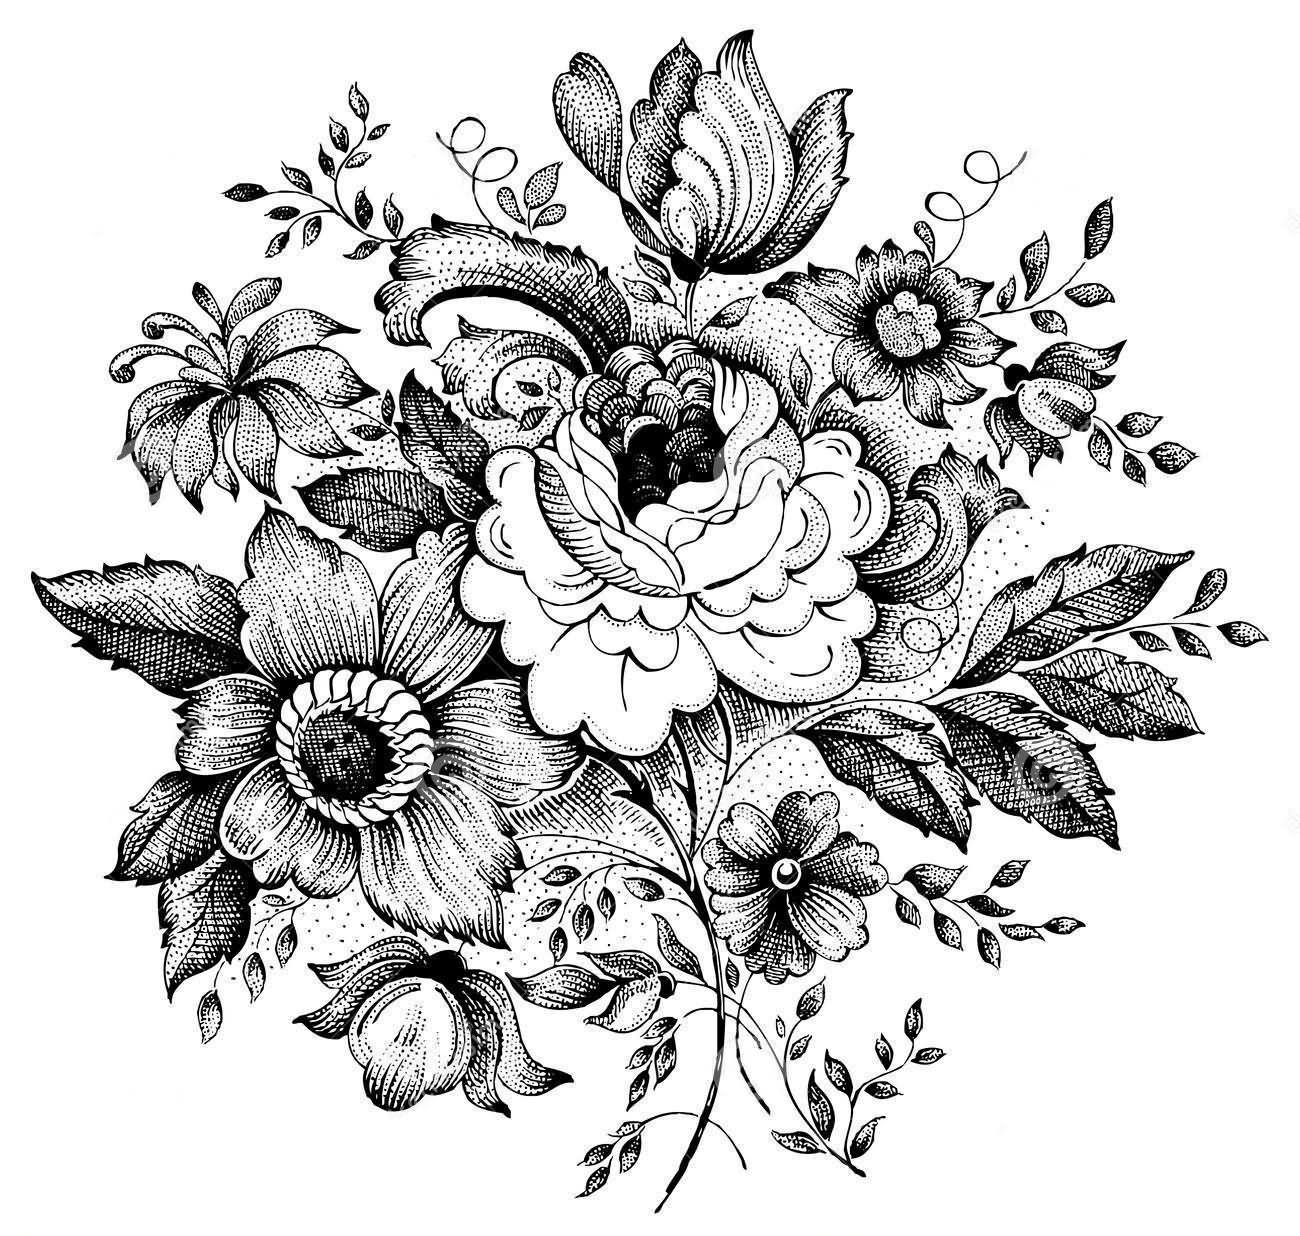 Floral Tattoo Images Designs: 15+ Black And White Floral Tattoo Designs